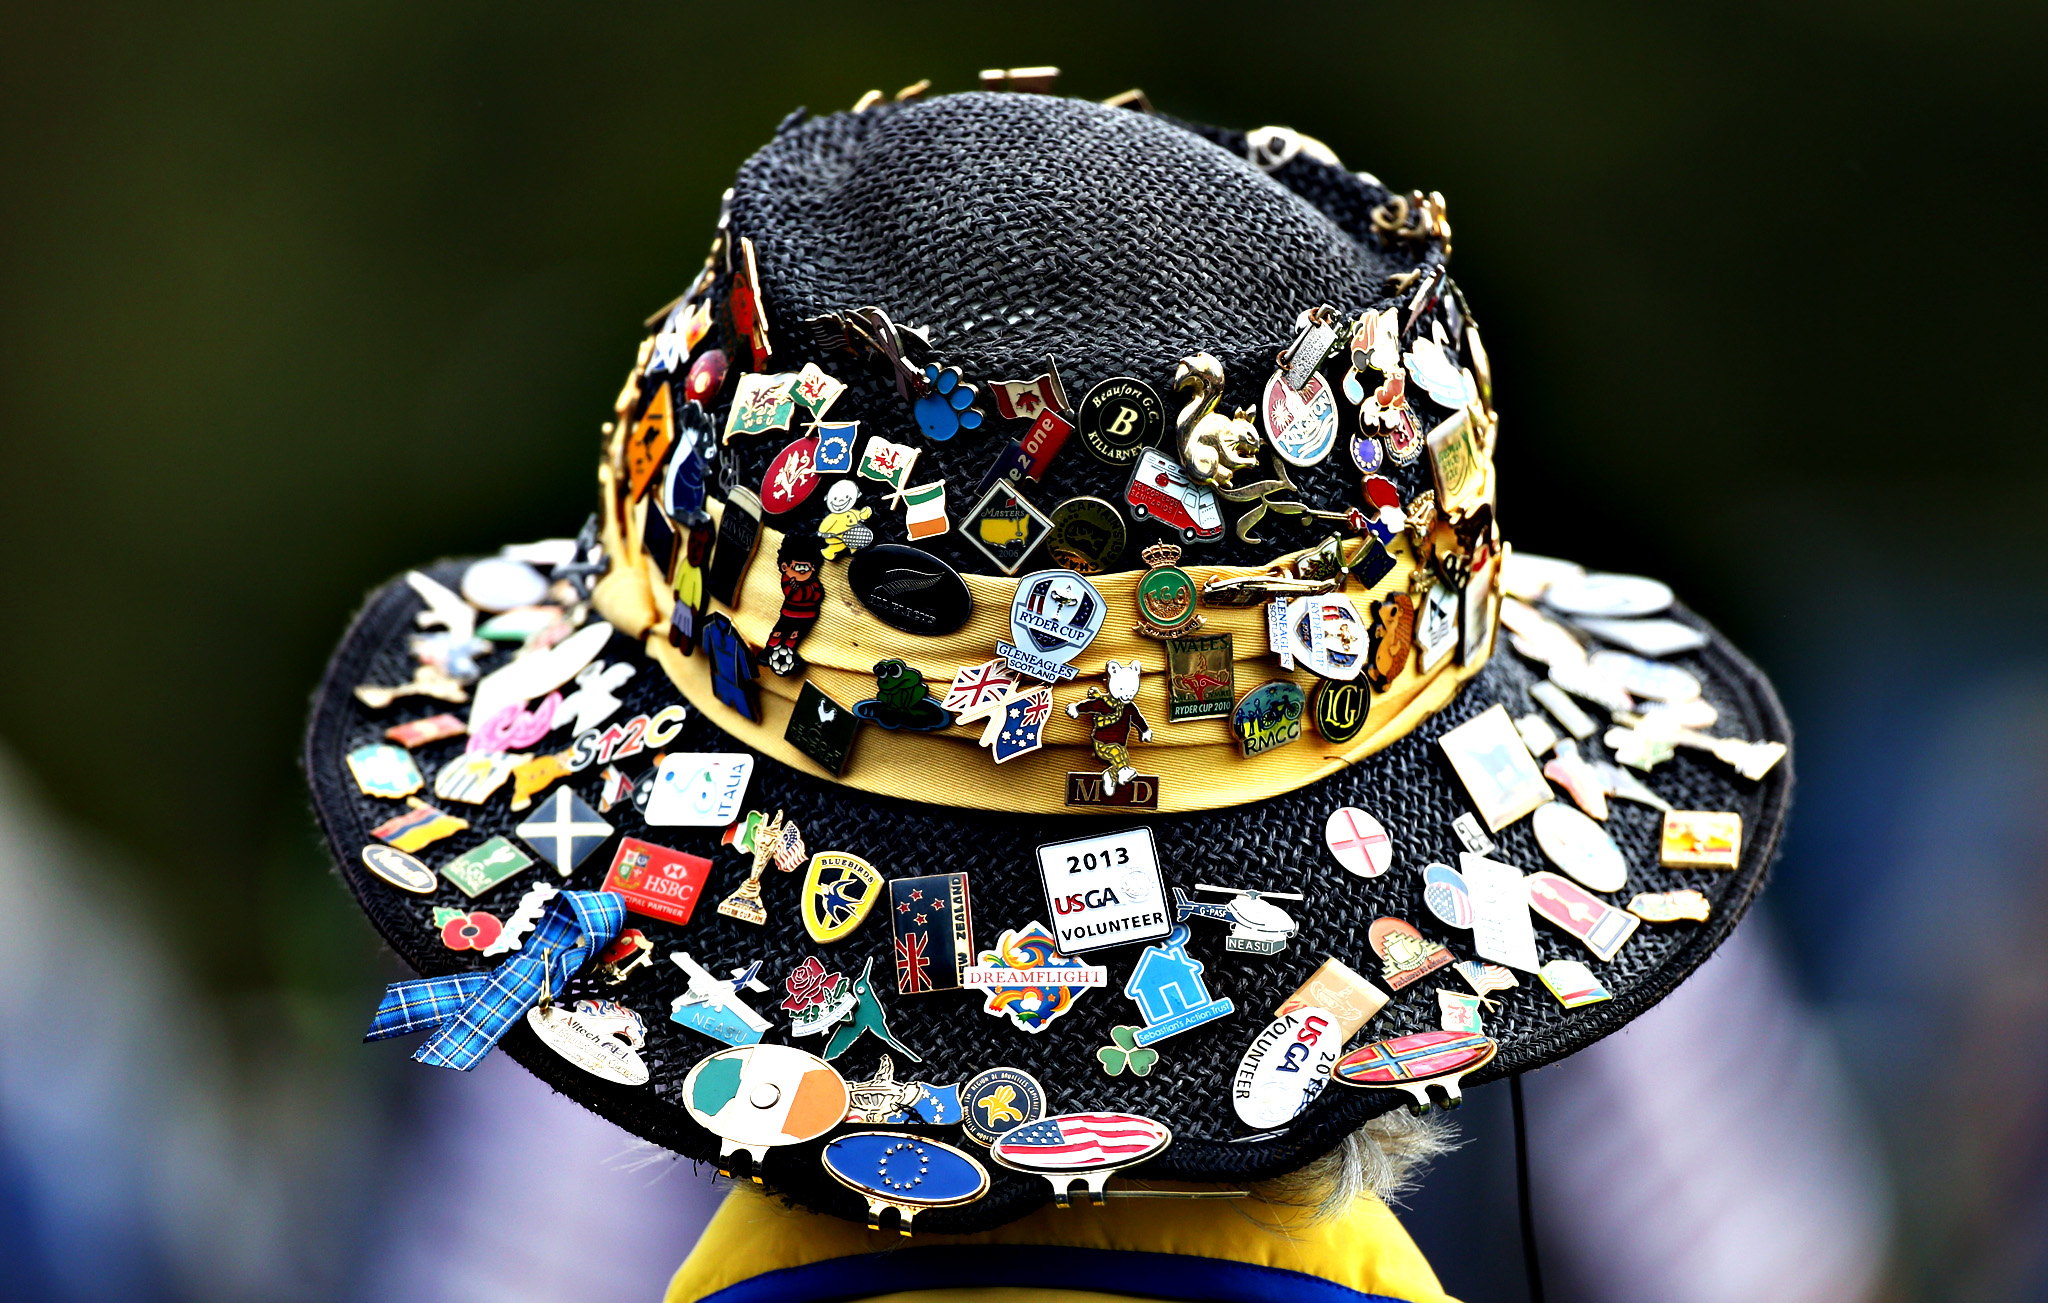 A spectator wearing a hat covered in badges waits for the opening ceremony of the 2014 Ryder Cup golf tournament, at Gleneagles, Scotland, Thursday, Sept. 25, 2014.